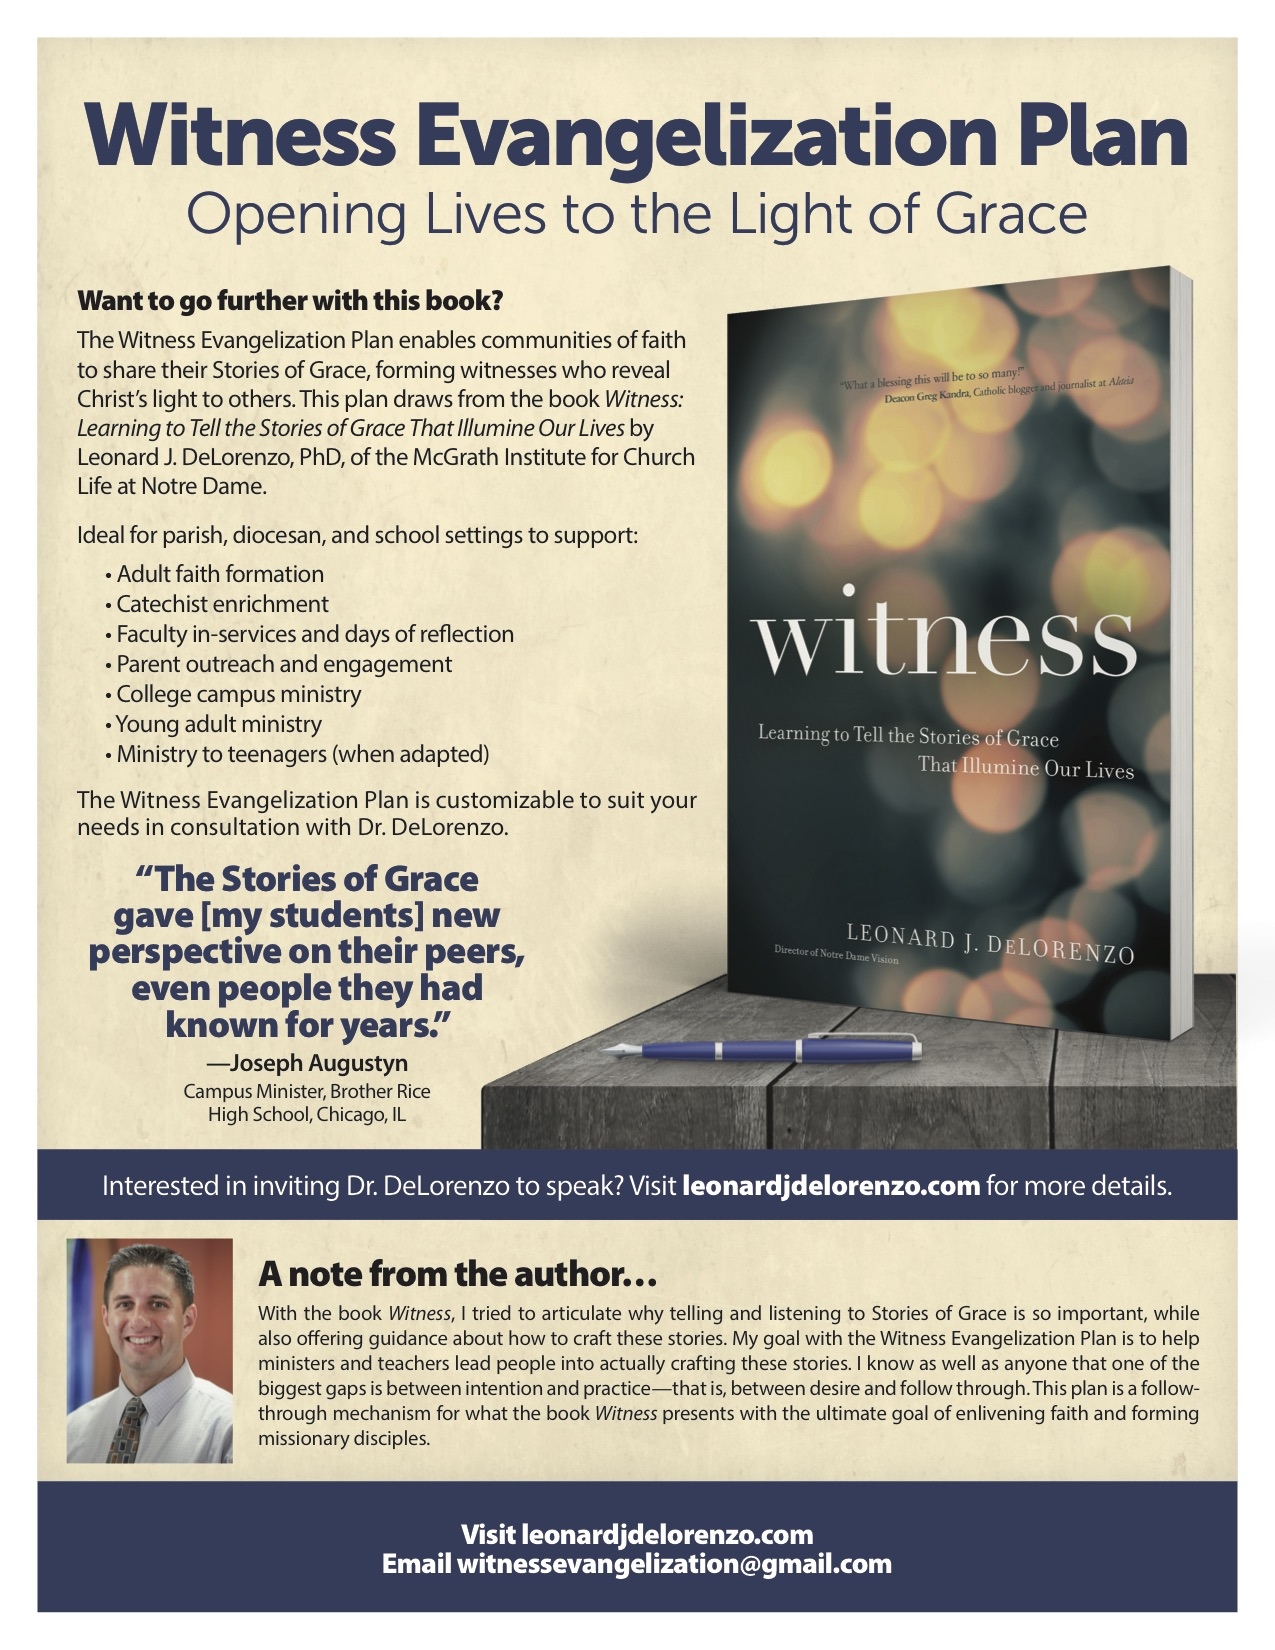 - The Witness Evangelization Plan enables communities of faith to share their Stories of Grace, forming witnesses who reveal Christ's light to others. This customizable plan is ideal for parishes, dioceses, and schools, whether for adult faith formation, catechist enrichment, faculty in-services and days of reflection, parent outreach and engagement, college campus ministry, young adult ministry, or ministry to teenagers.